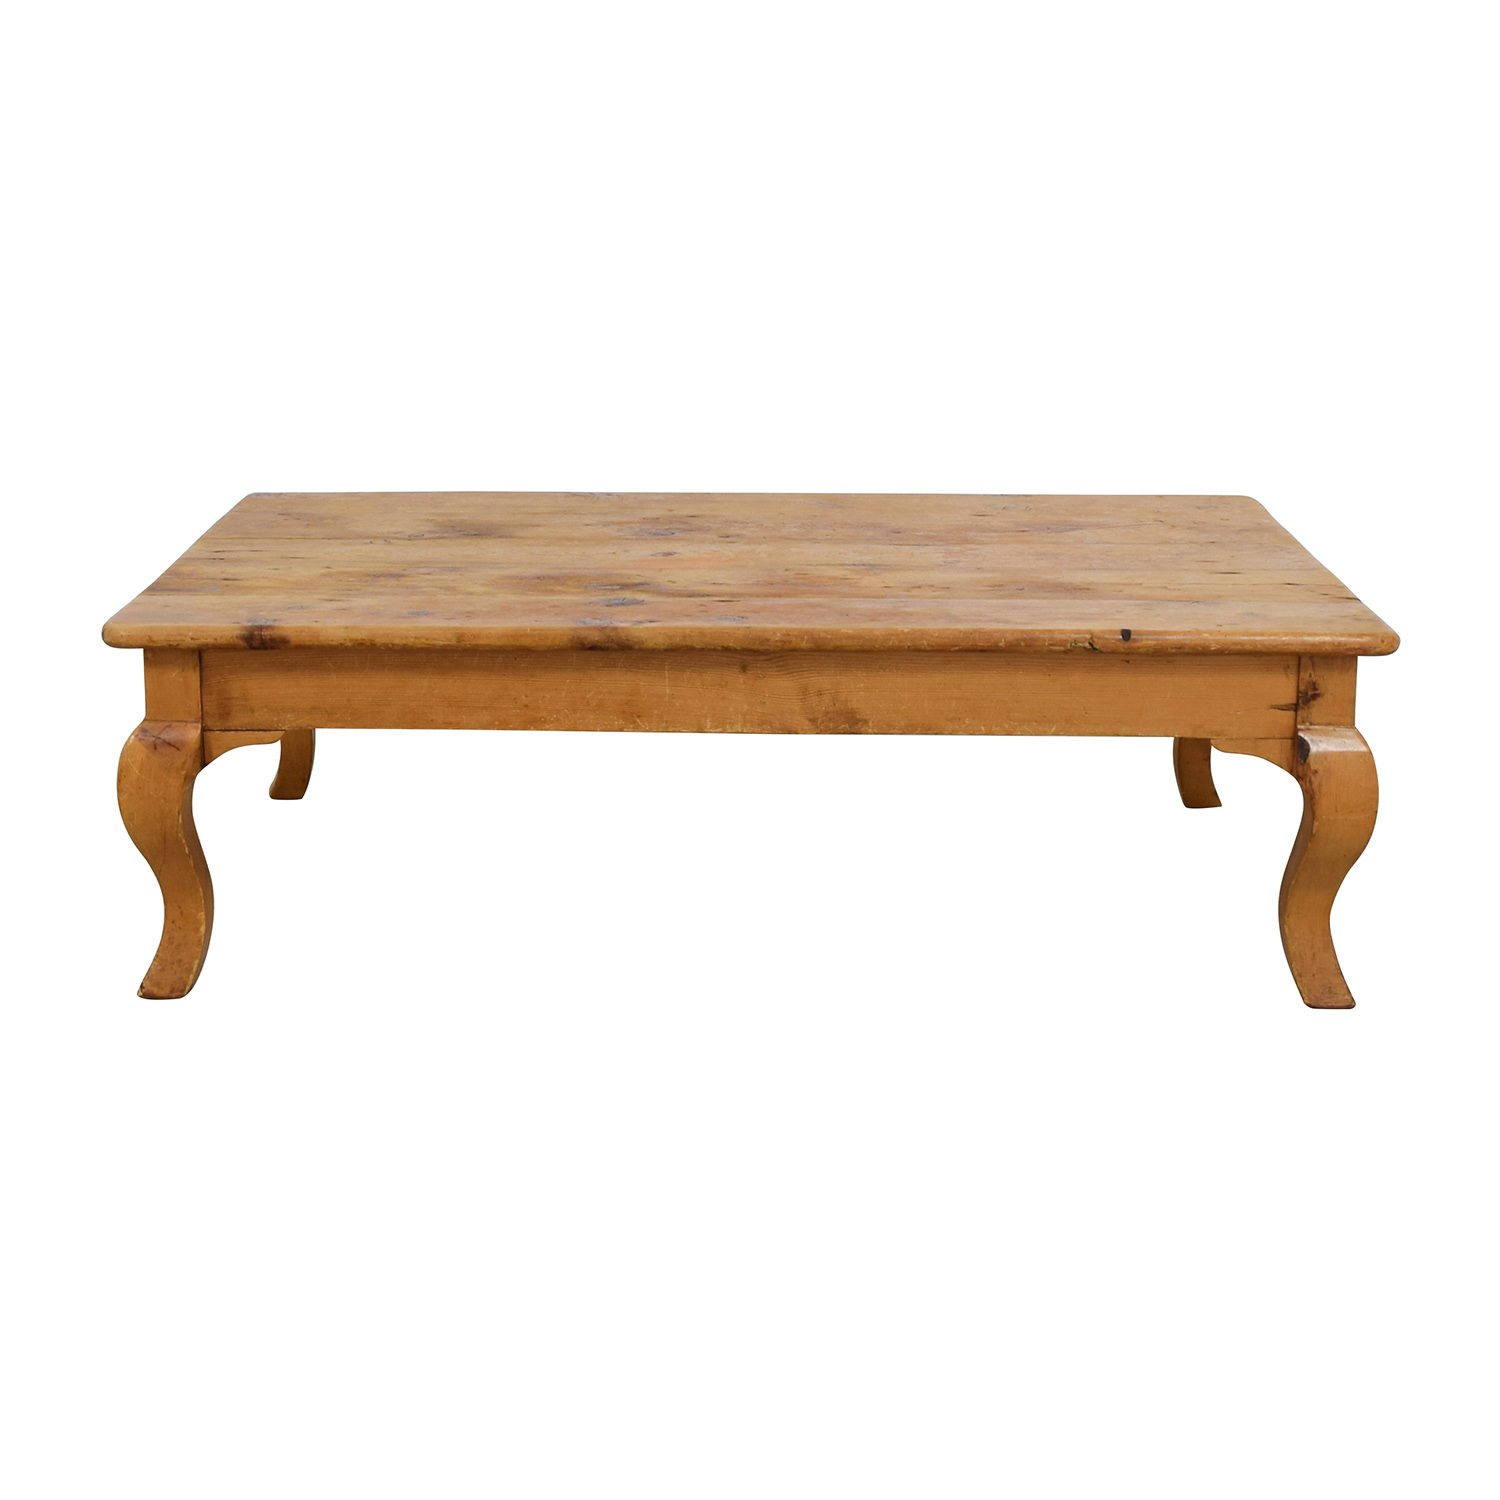 Custom Hand Carved Large Natural Wood Coffee Table